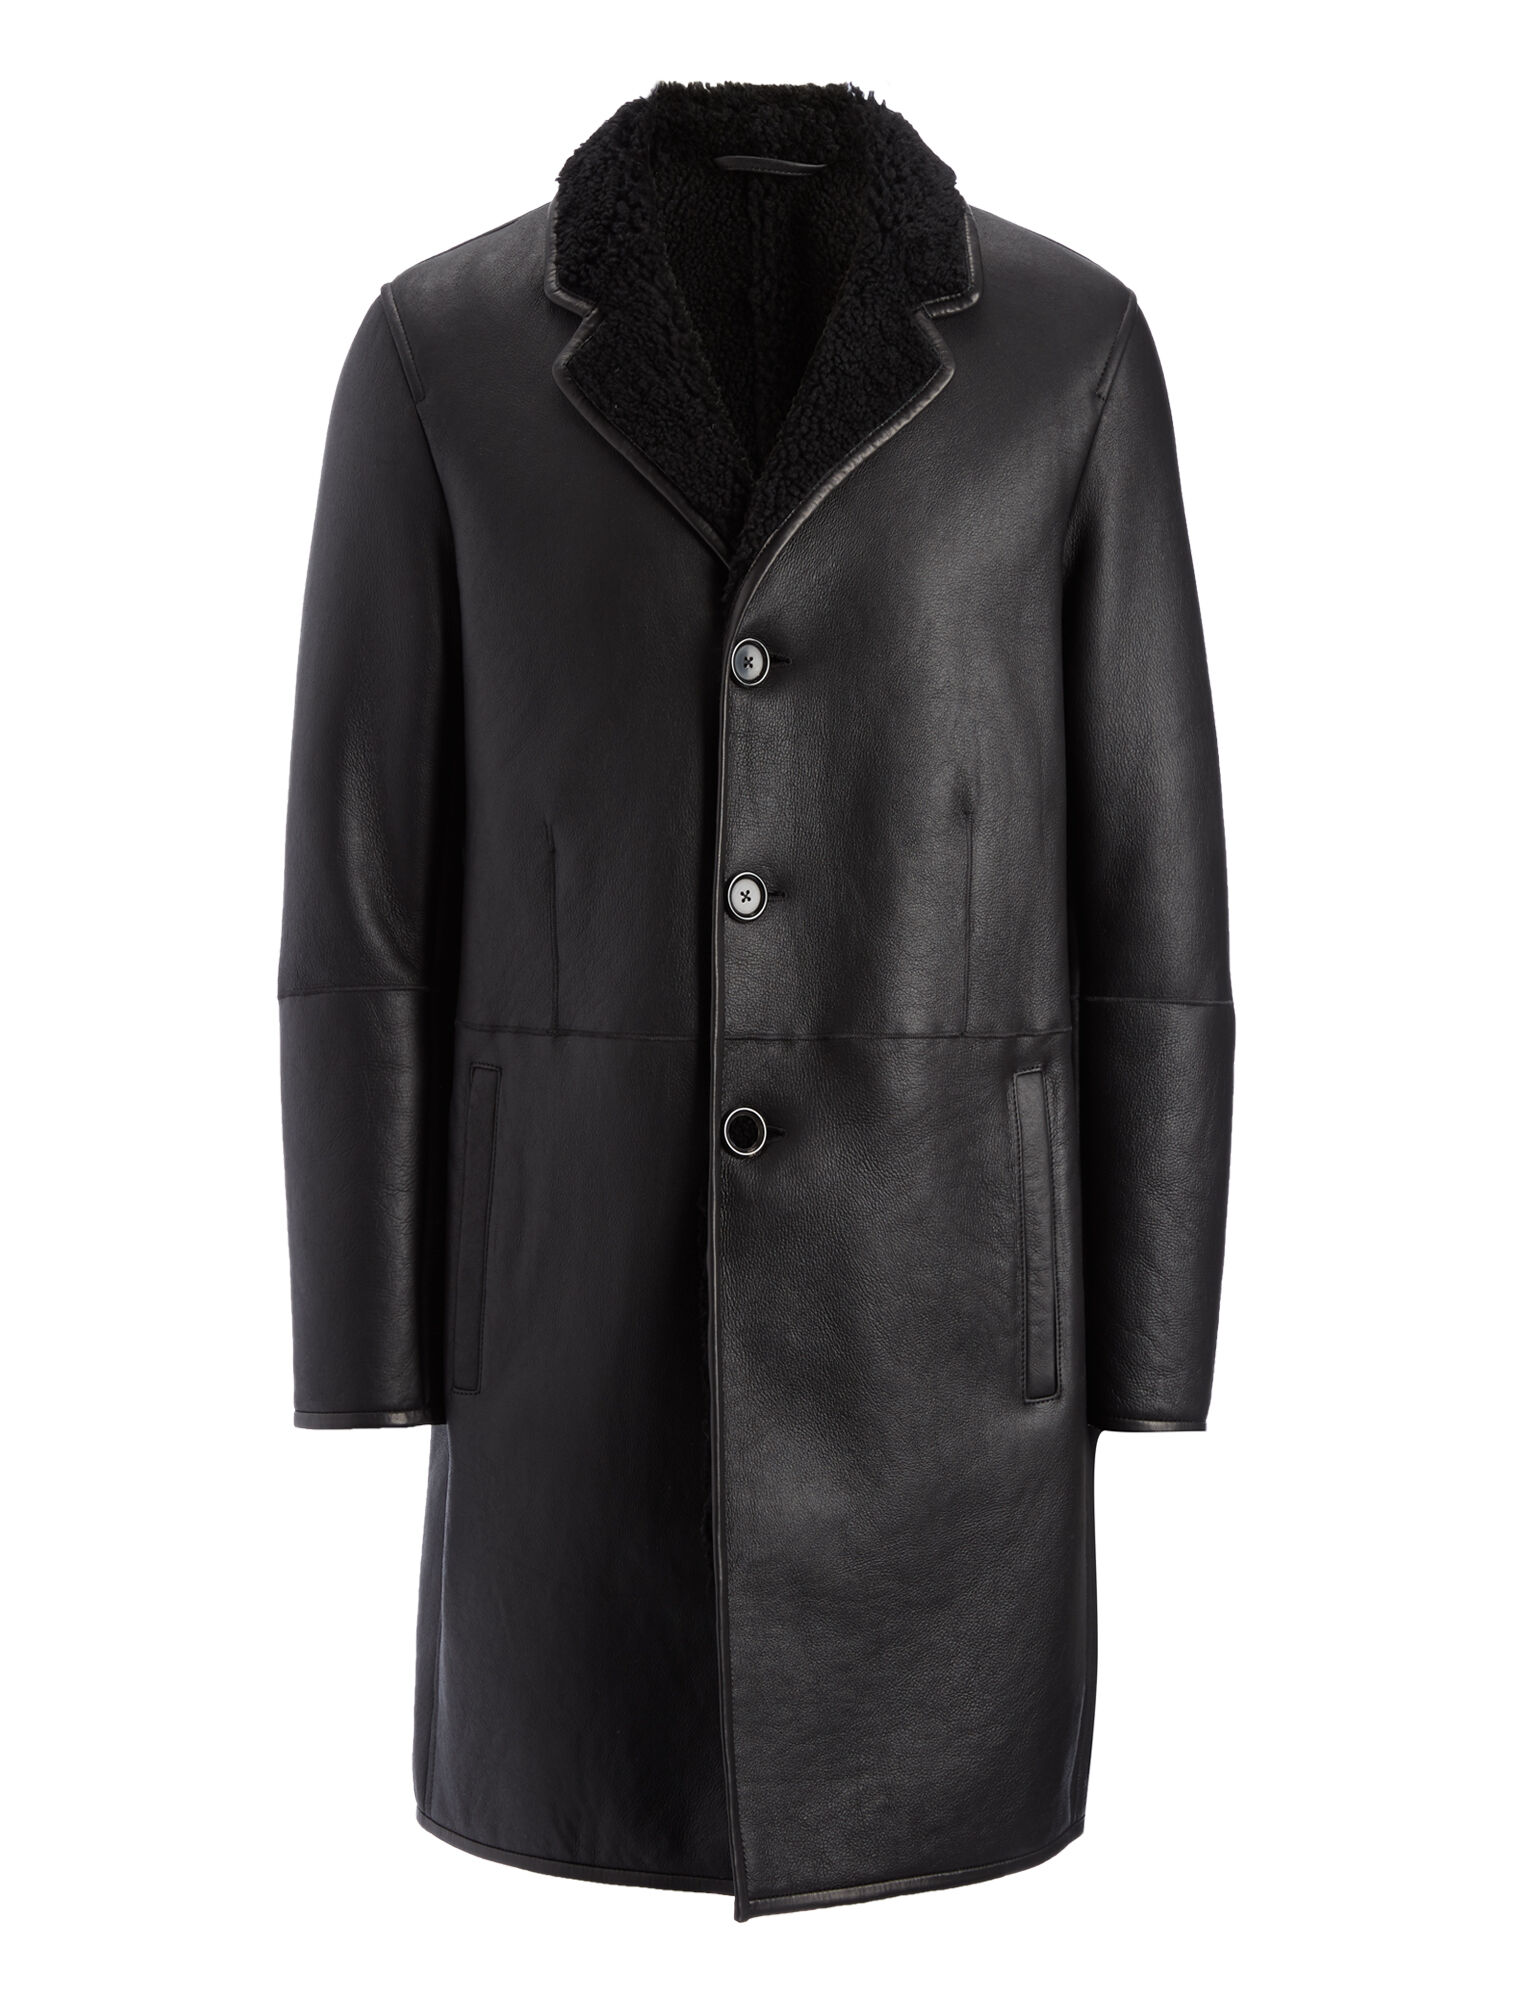 Joseph, Sheepskin Aston Coat, in BLACK